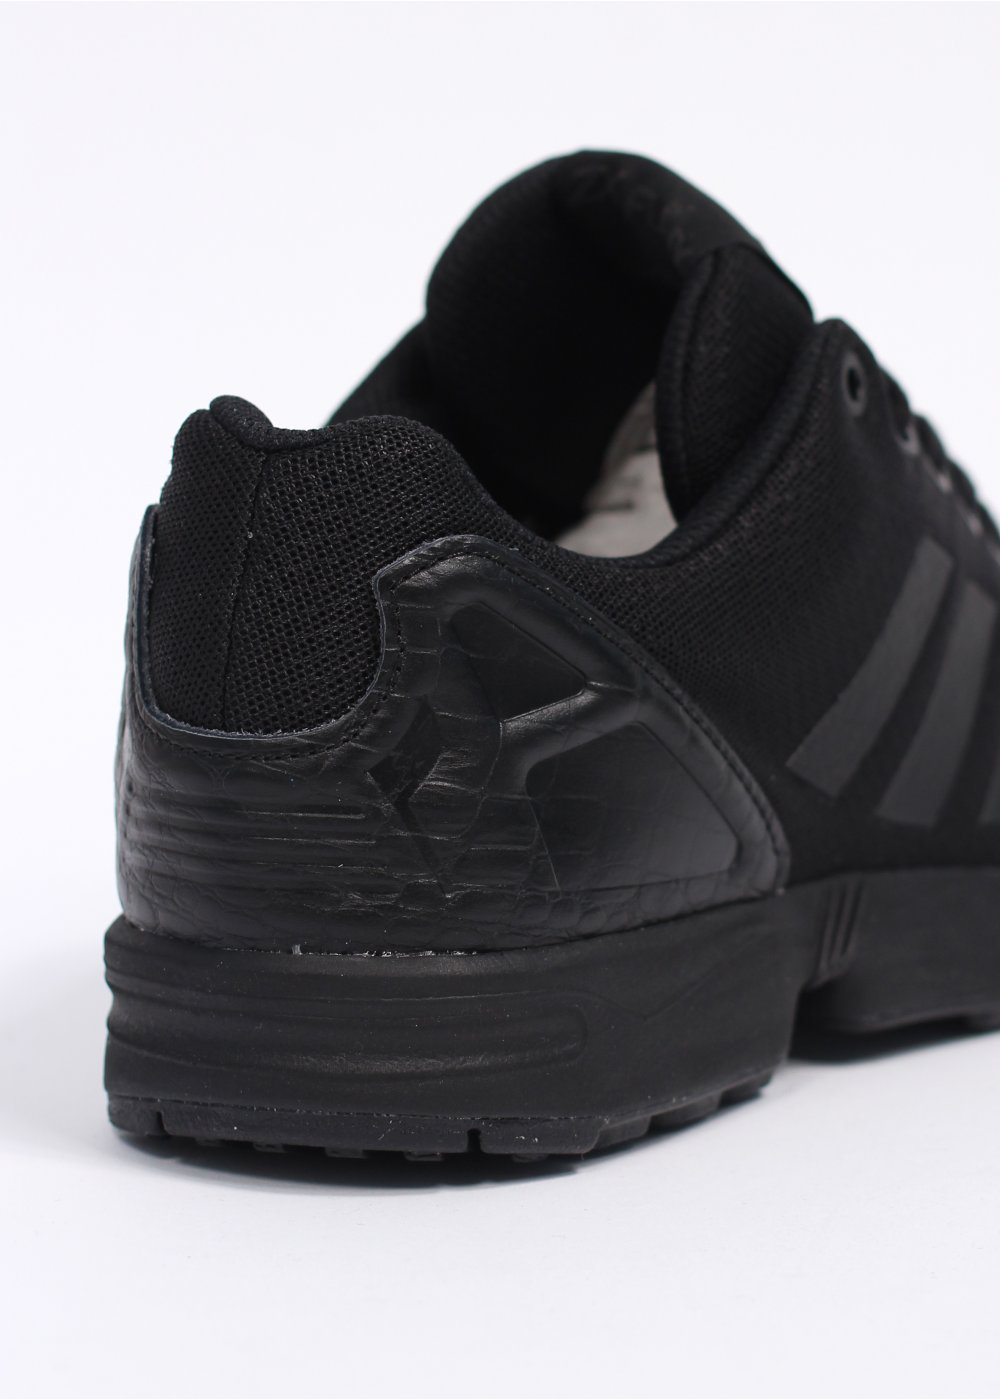 adidas zx trainers black